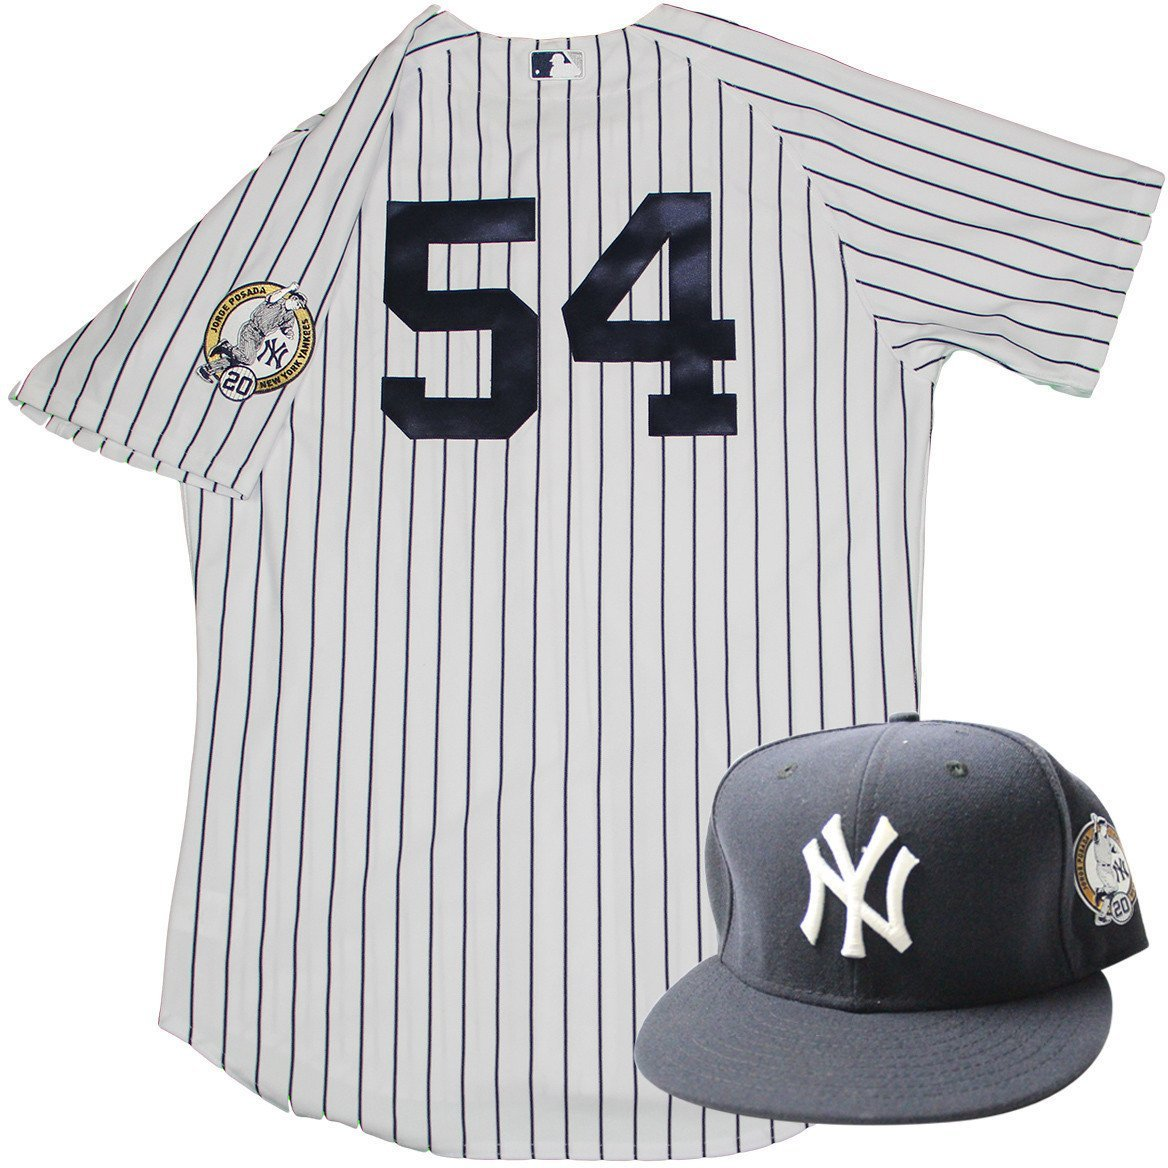 check out ee371 45dc3 Joe Espada Uniform - NY Yankees 2015 Game Used #54 Jersey ...